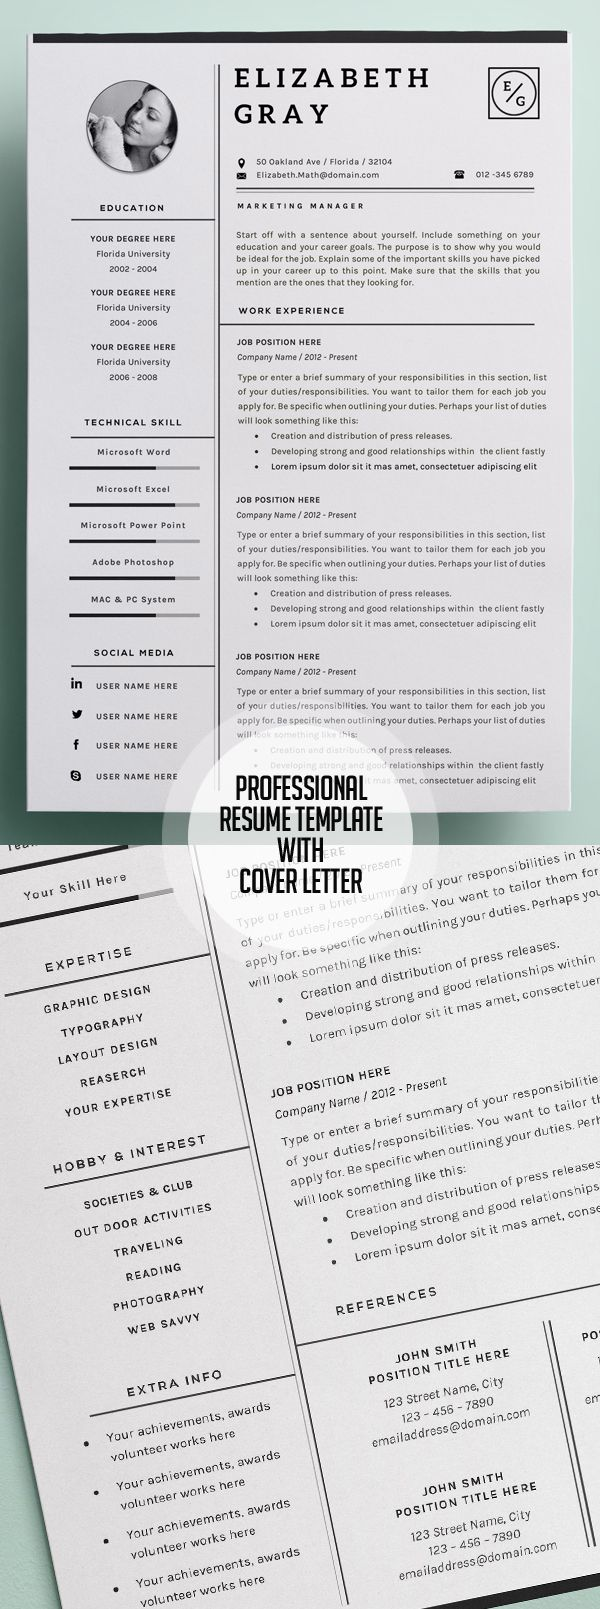 Picnictoimpeachus  Surprising  Resume Ideas On Pinterest  Resume Resume Templates And  With Handsome Professional And Modern Resume Template With Page Cover Cvtemplate With Beautiful Sample Federal Resume Also Office Clerk Resume In Addition Resume Job Objective And Sample Resume Cover Letters As Well As Job Objective For Resume Additionally Sample Resumes For College Students From Pinterestcom With Picnictoimpeachus  Handsome  Resume Ideas On Pinterest  Resume Resume Templates And  With Beautiful Professional And Modern Resume Template With Page Cover Cvtemplate And Surprising Sample Federal Resume Also Office Clerk Resume In Addition Resume Job Objective From Pinterestcom